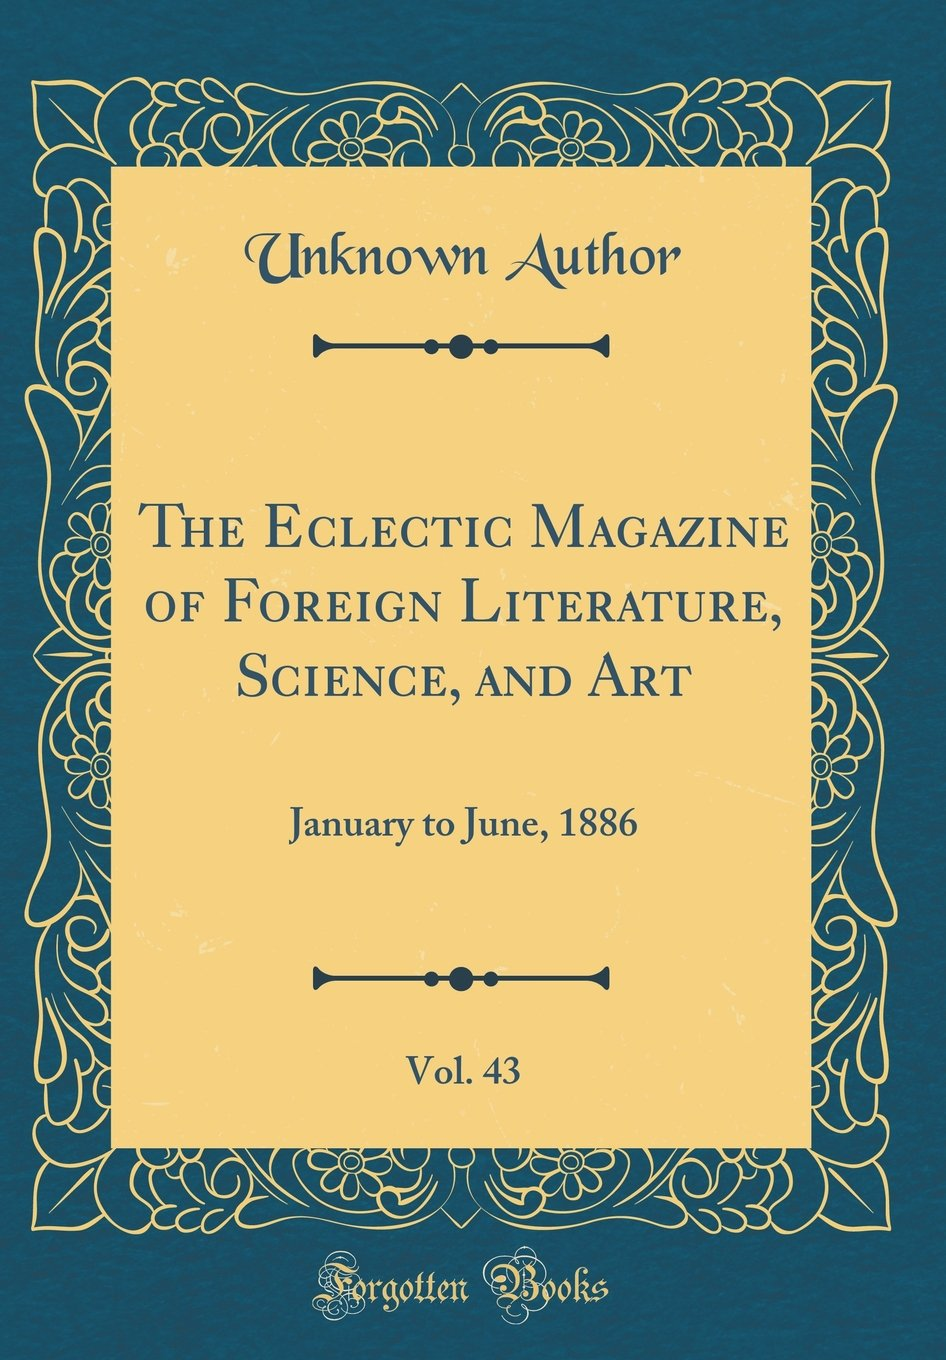 The Eclectic Magazine of Foreign Literature, Science, and Art, Vol. 43: January to June, 1886 (Classic Reprint) PDF